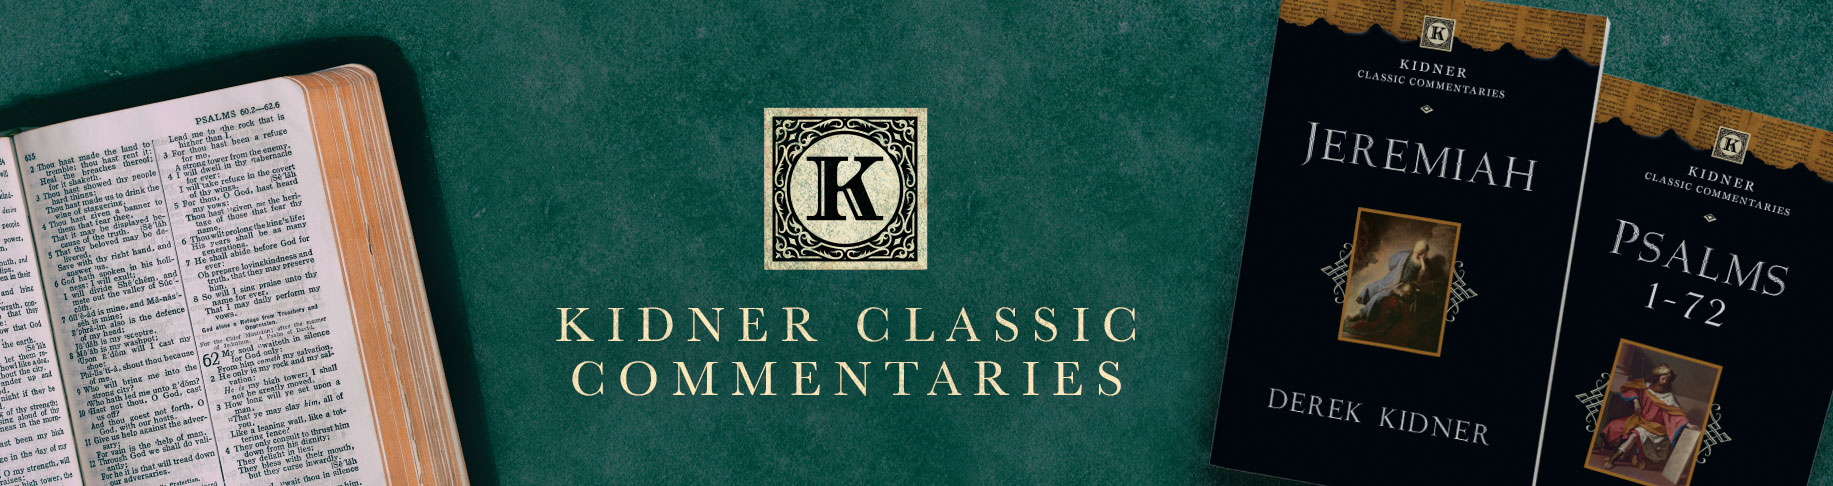 Kidner Classic Commentaries